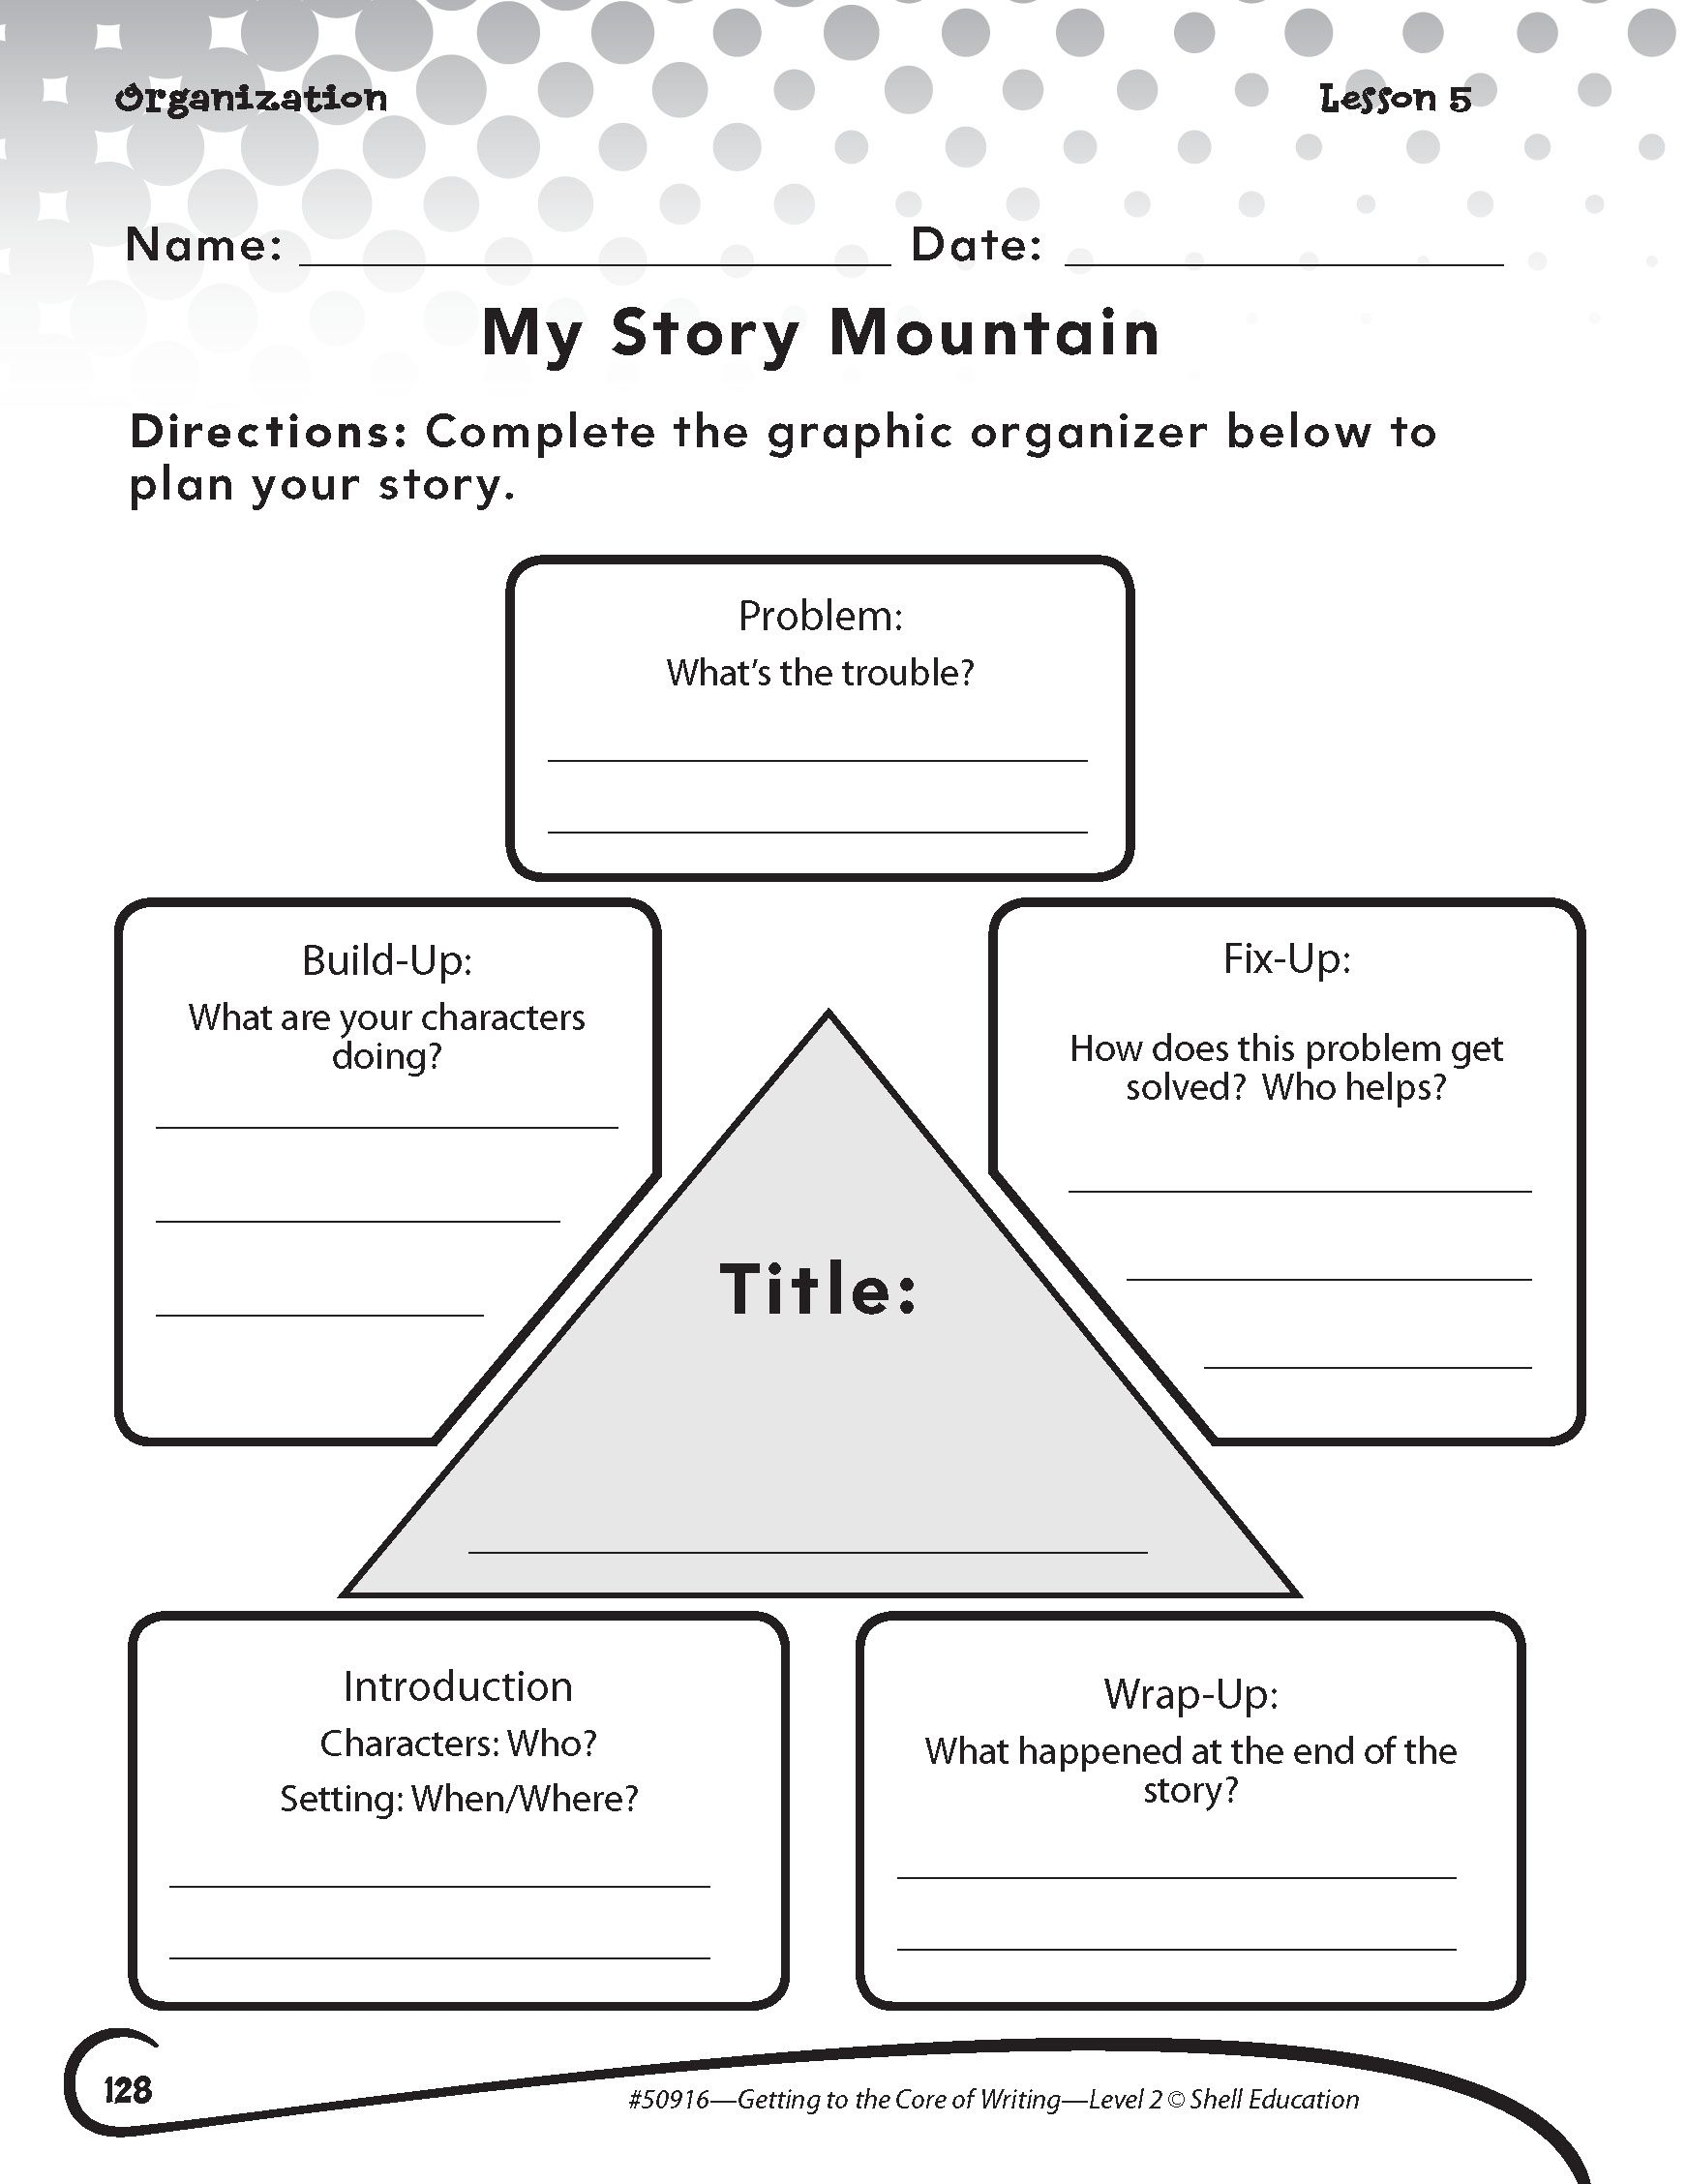 my story mountain activity from getting to the core of writing second grade learn more at shelleducation com shelleducation  [ 1743 x 2256 Pixel ]